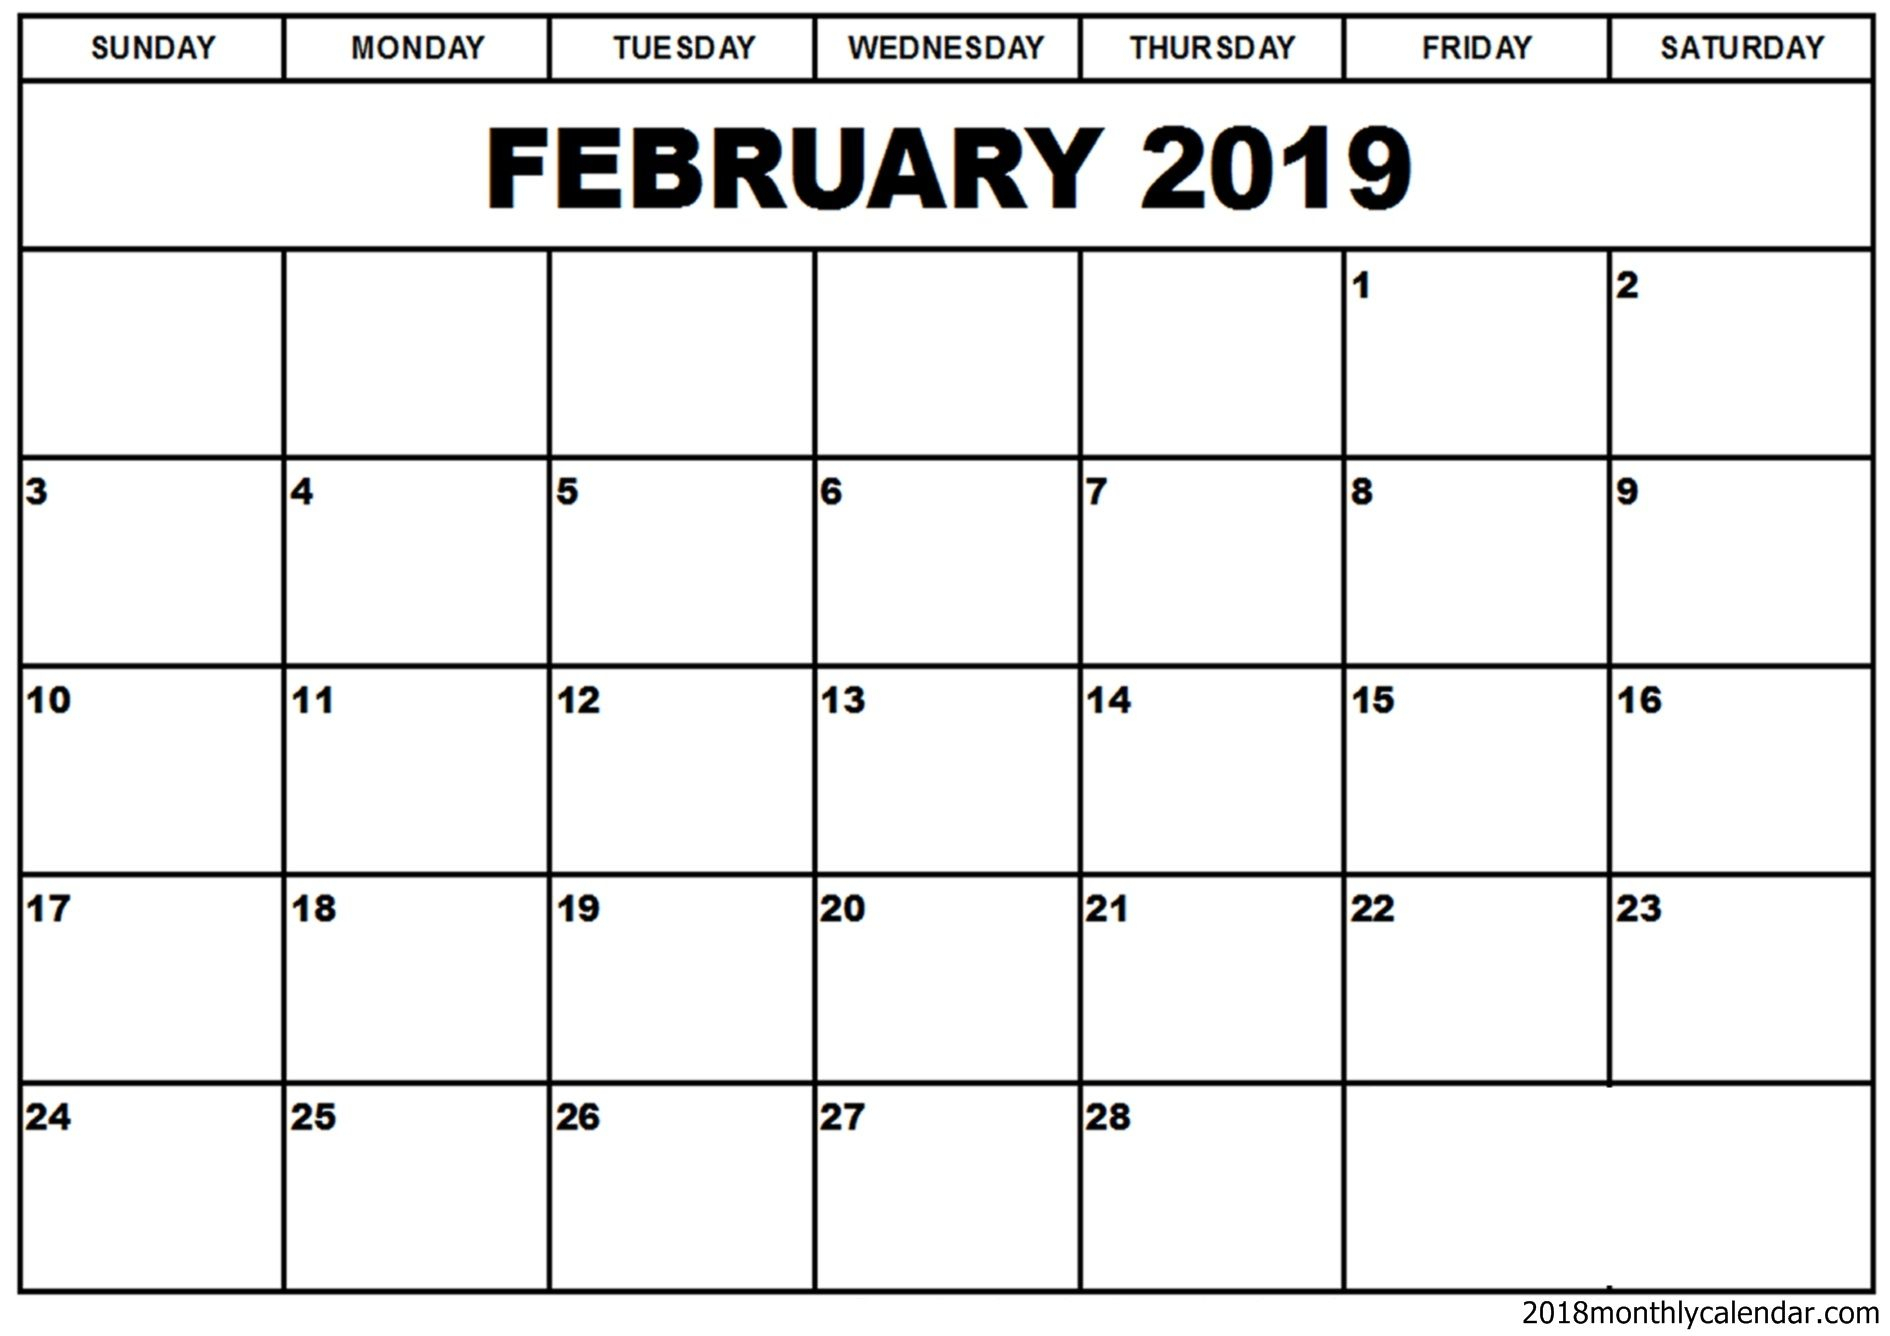 February 2019 Calendar Word Template | Free Printable Monthly with Blank Printable Calendar Pages